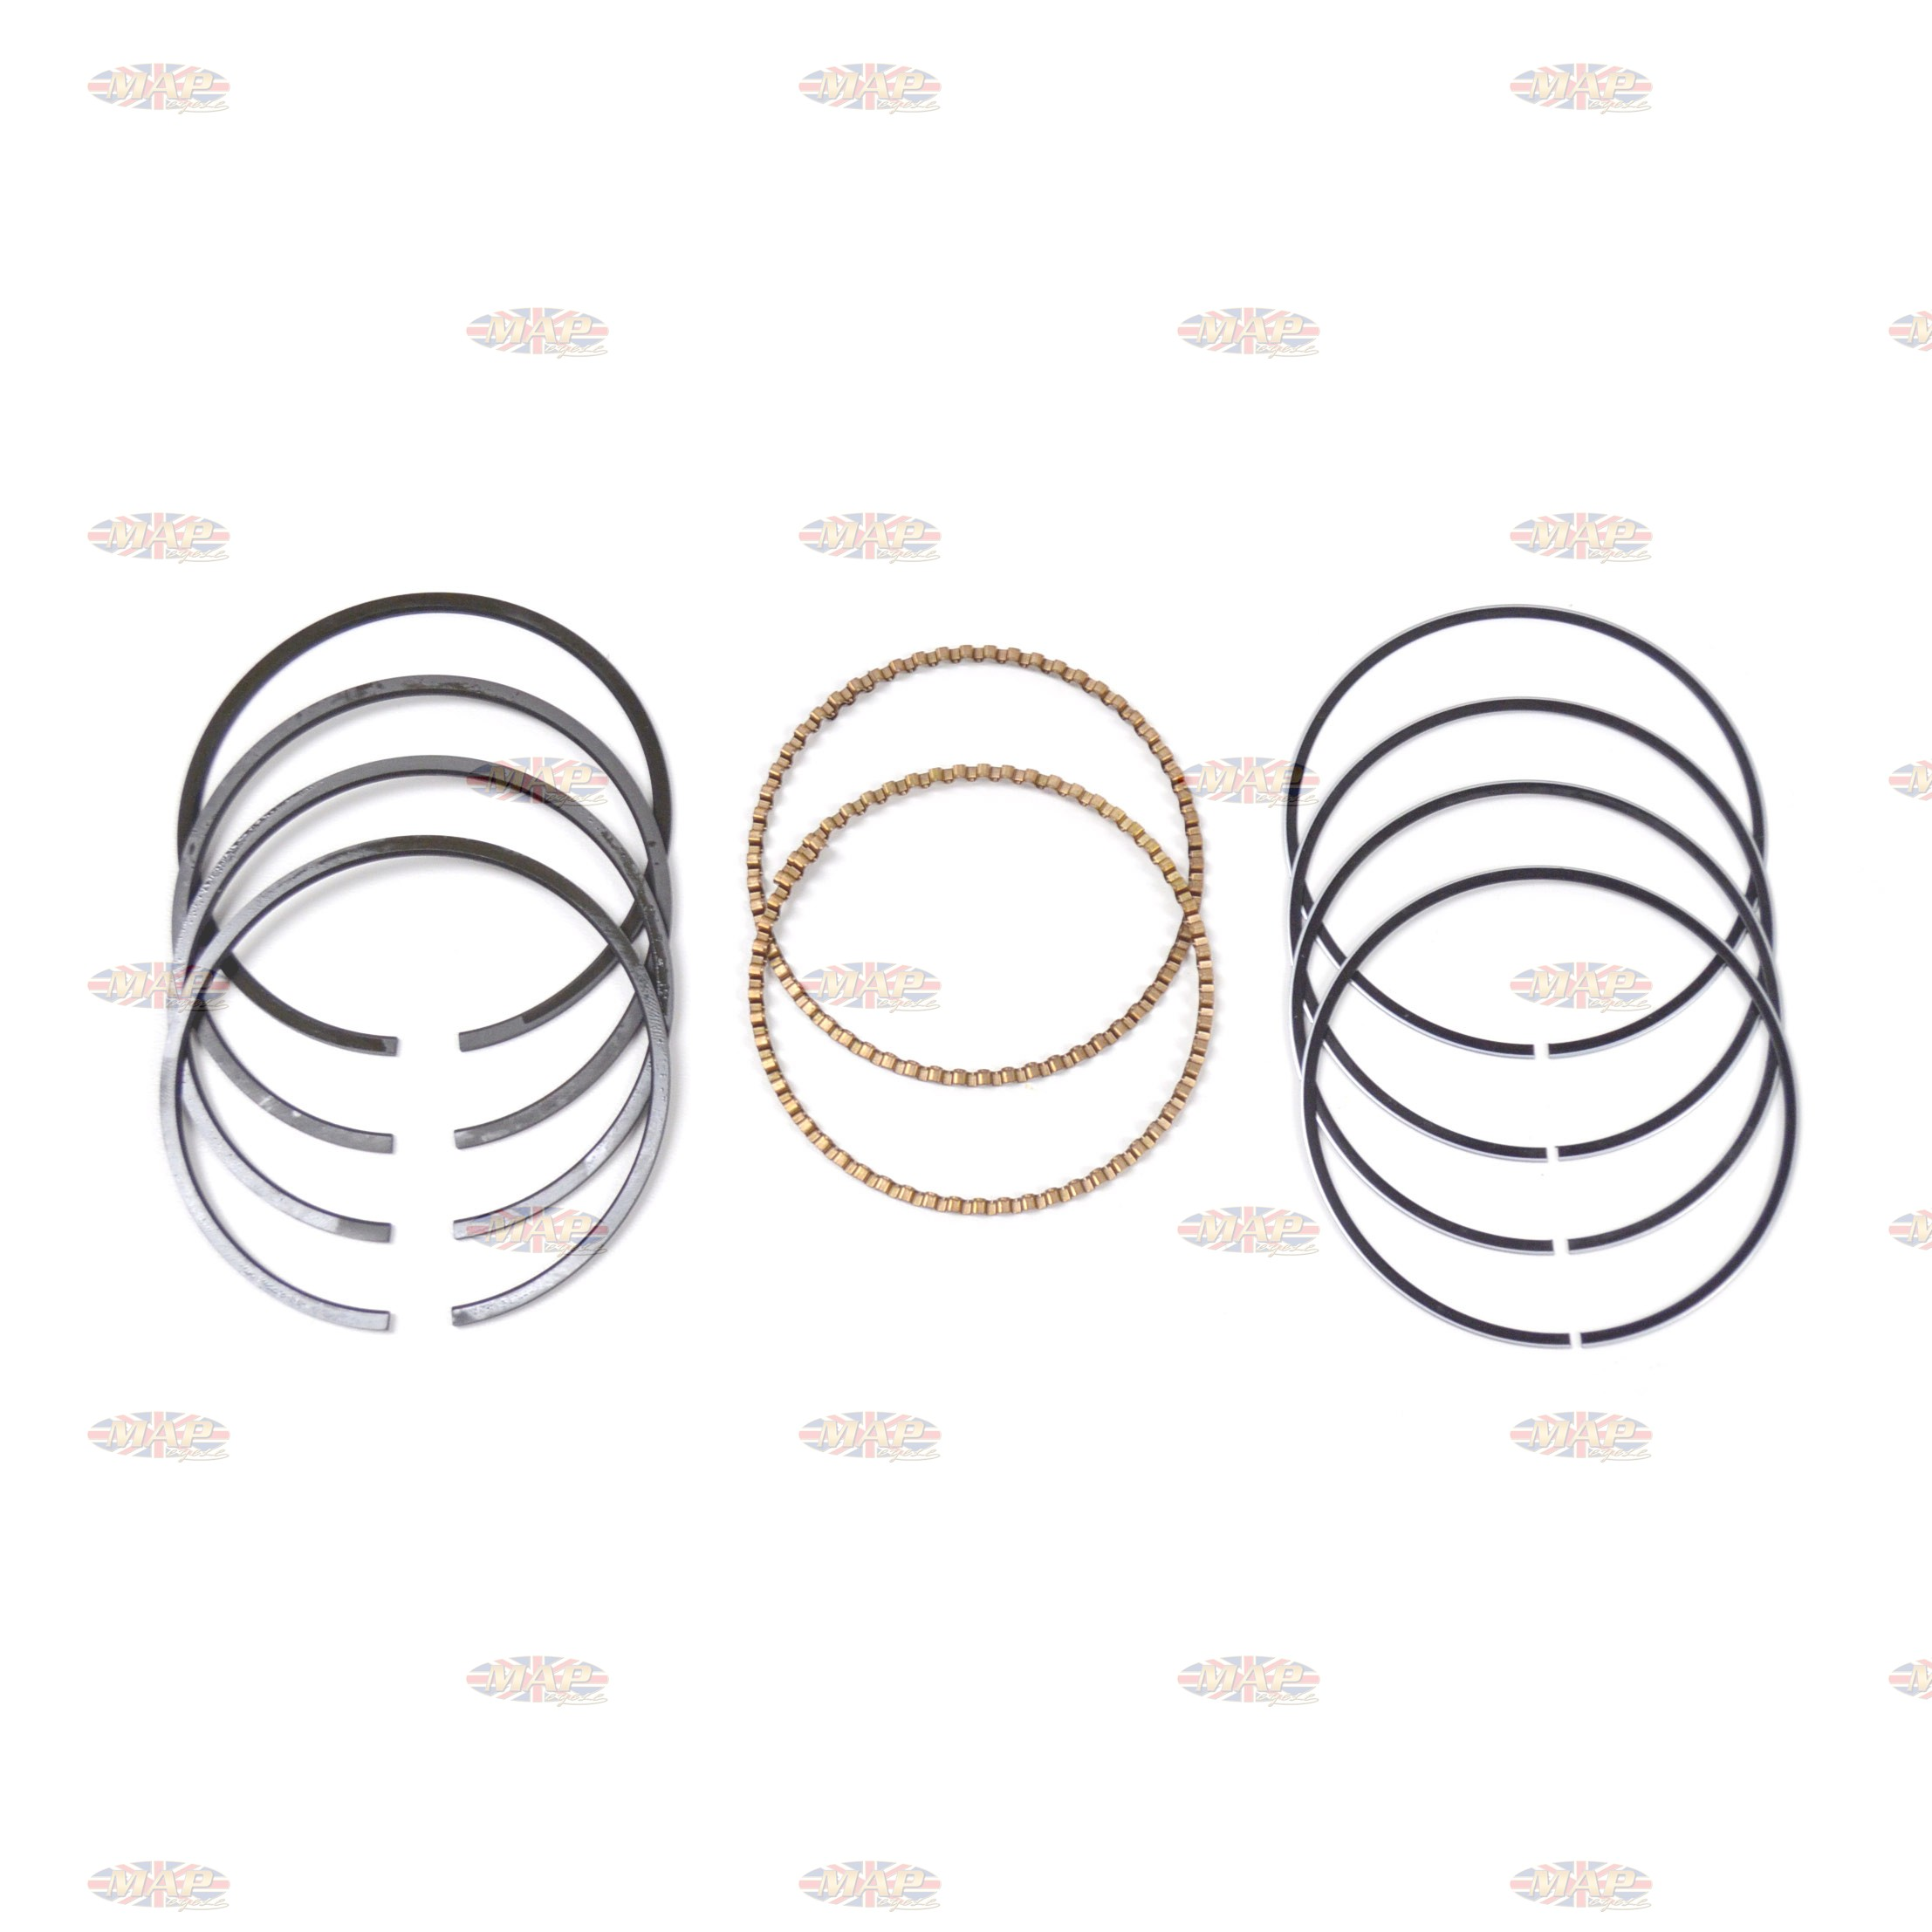 RING SET/ TRI 650 (GreatRings-USA) +.020 R11050/G020